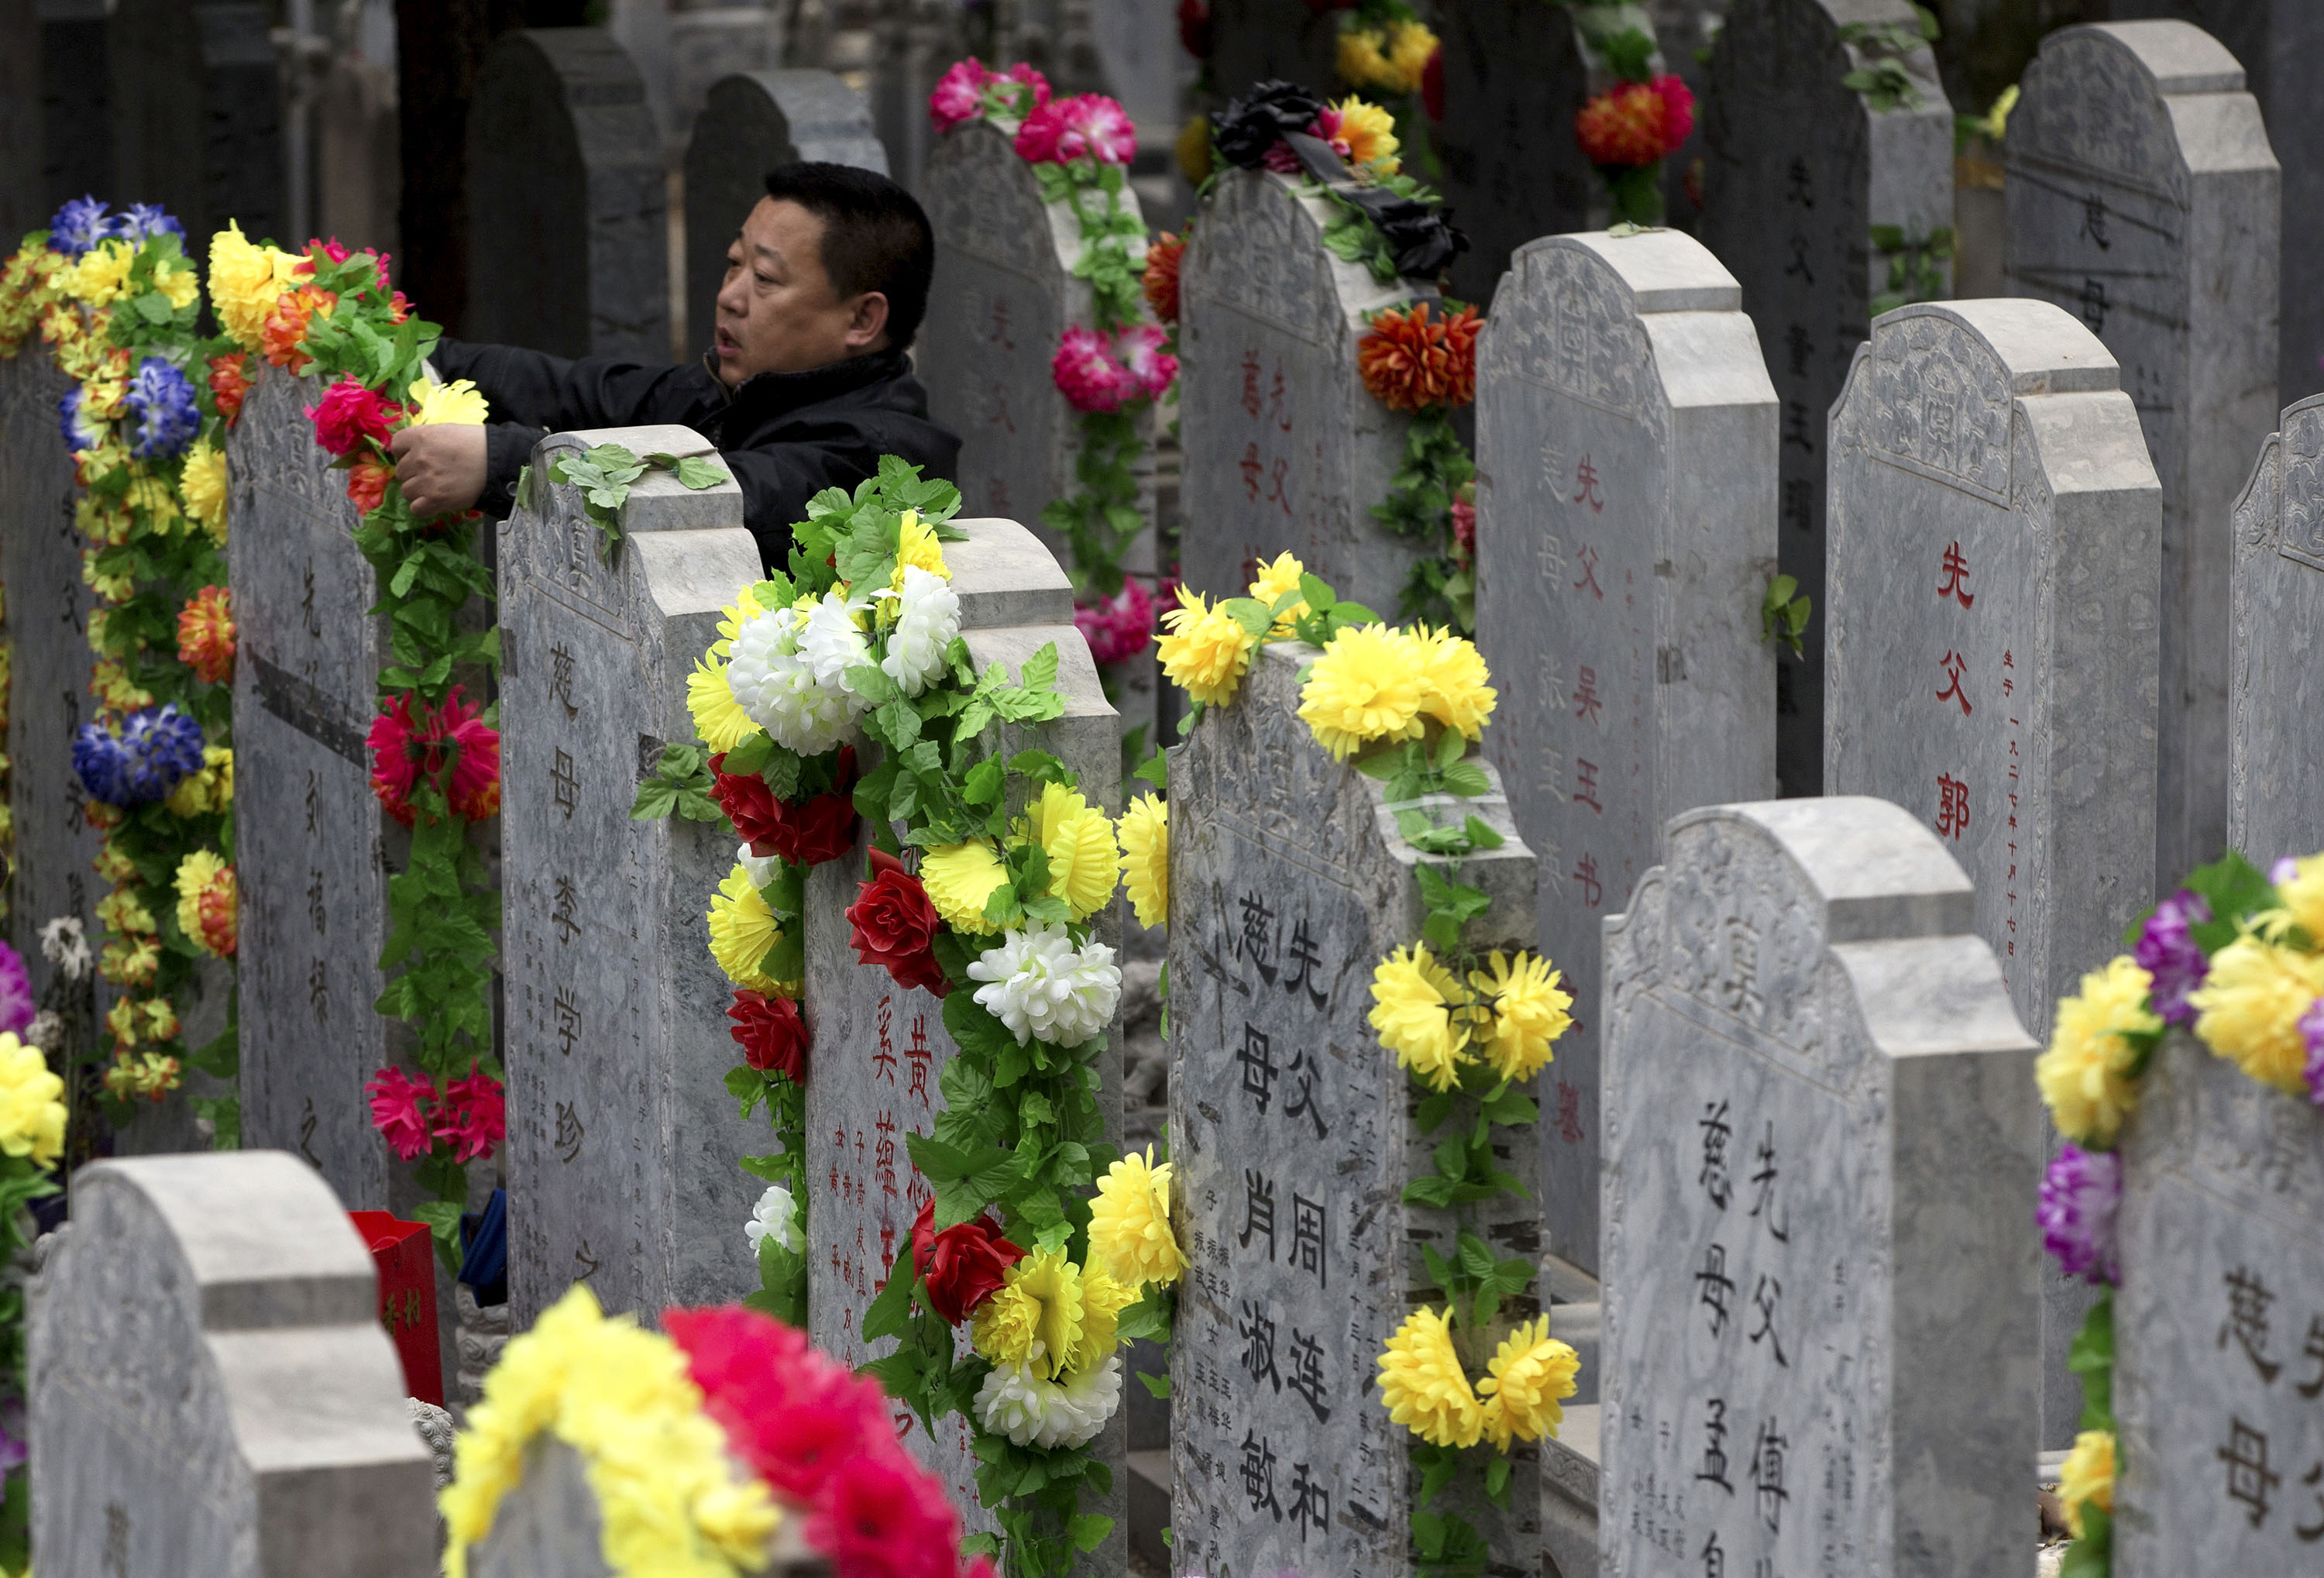 A man places flowers on the tomb stone of his family grave at the Babaoshan cemetery during the Qingming Festival in Beijing Thursday. Qingming festival, also known as the Grave Sweeping Day, is a day when Chinese around the world remember their dearly departed and take time off to clean up the tombs and place flowers and offerings.